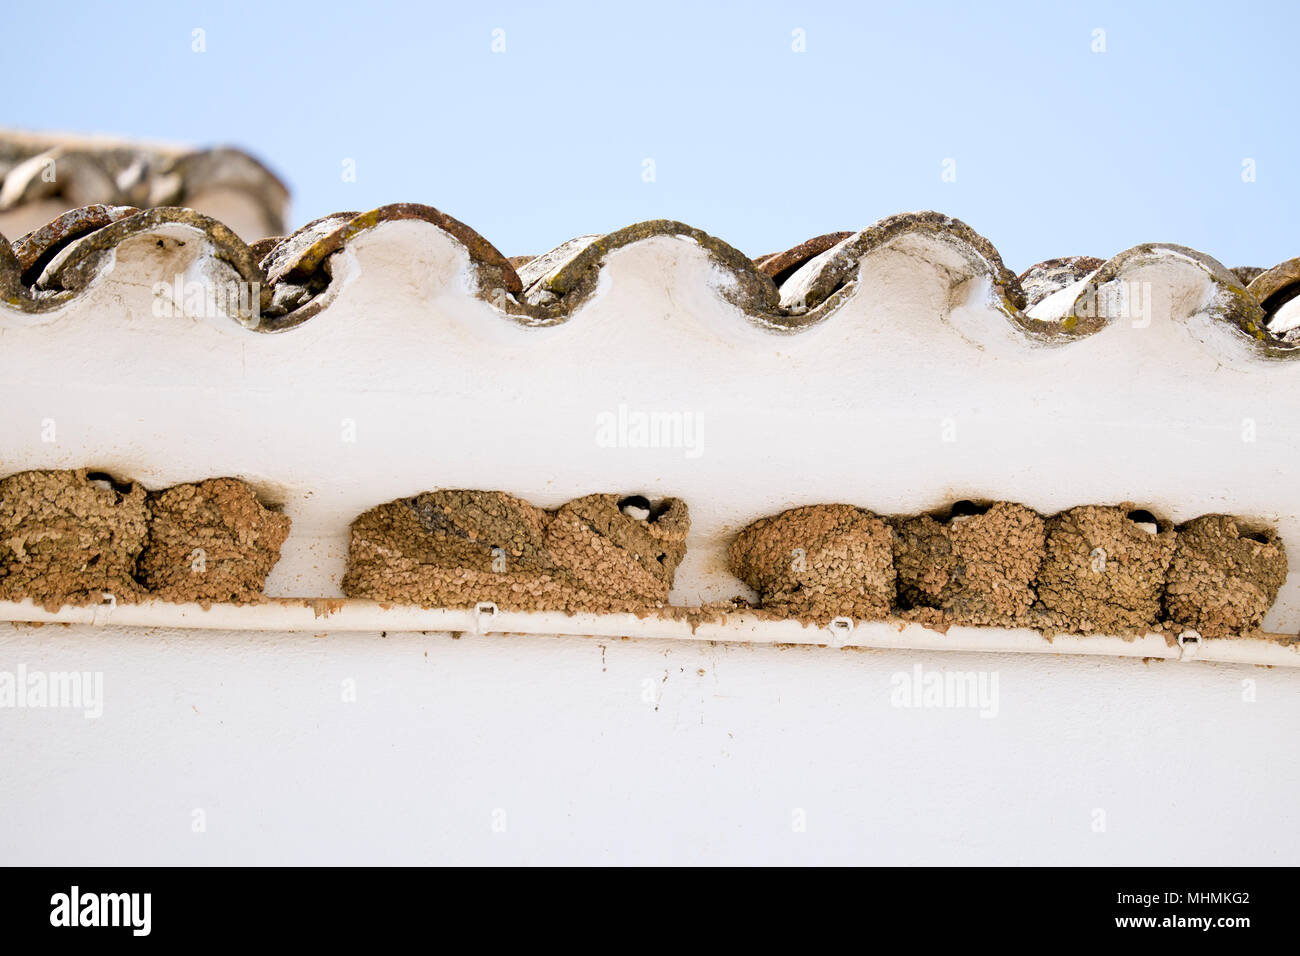 A colony of house martin nests built on a pipe close to the eaves of a whitewashed house in Benaocaz, Andalusia, Spain. - Stock Image